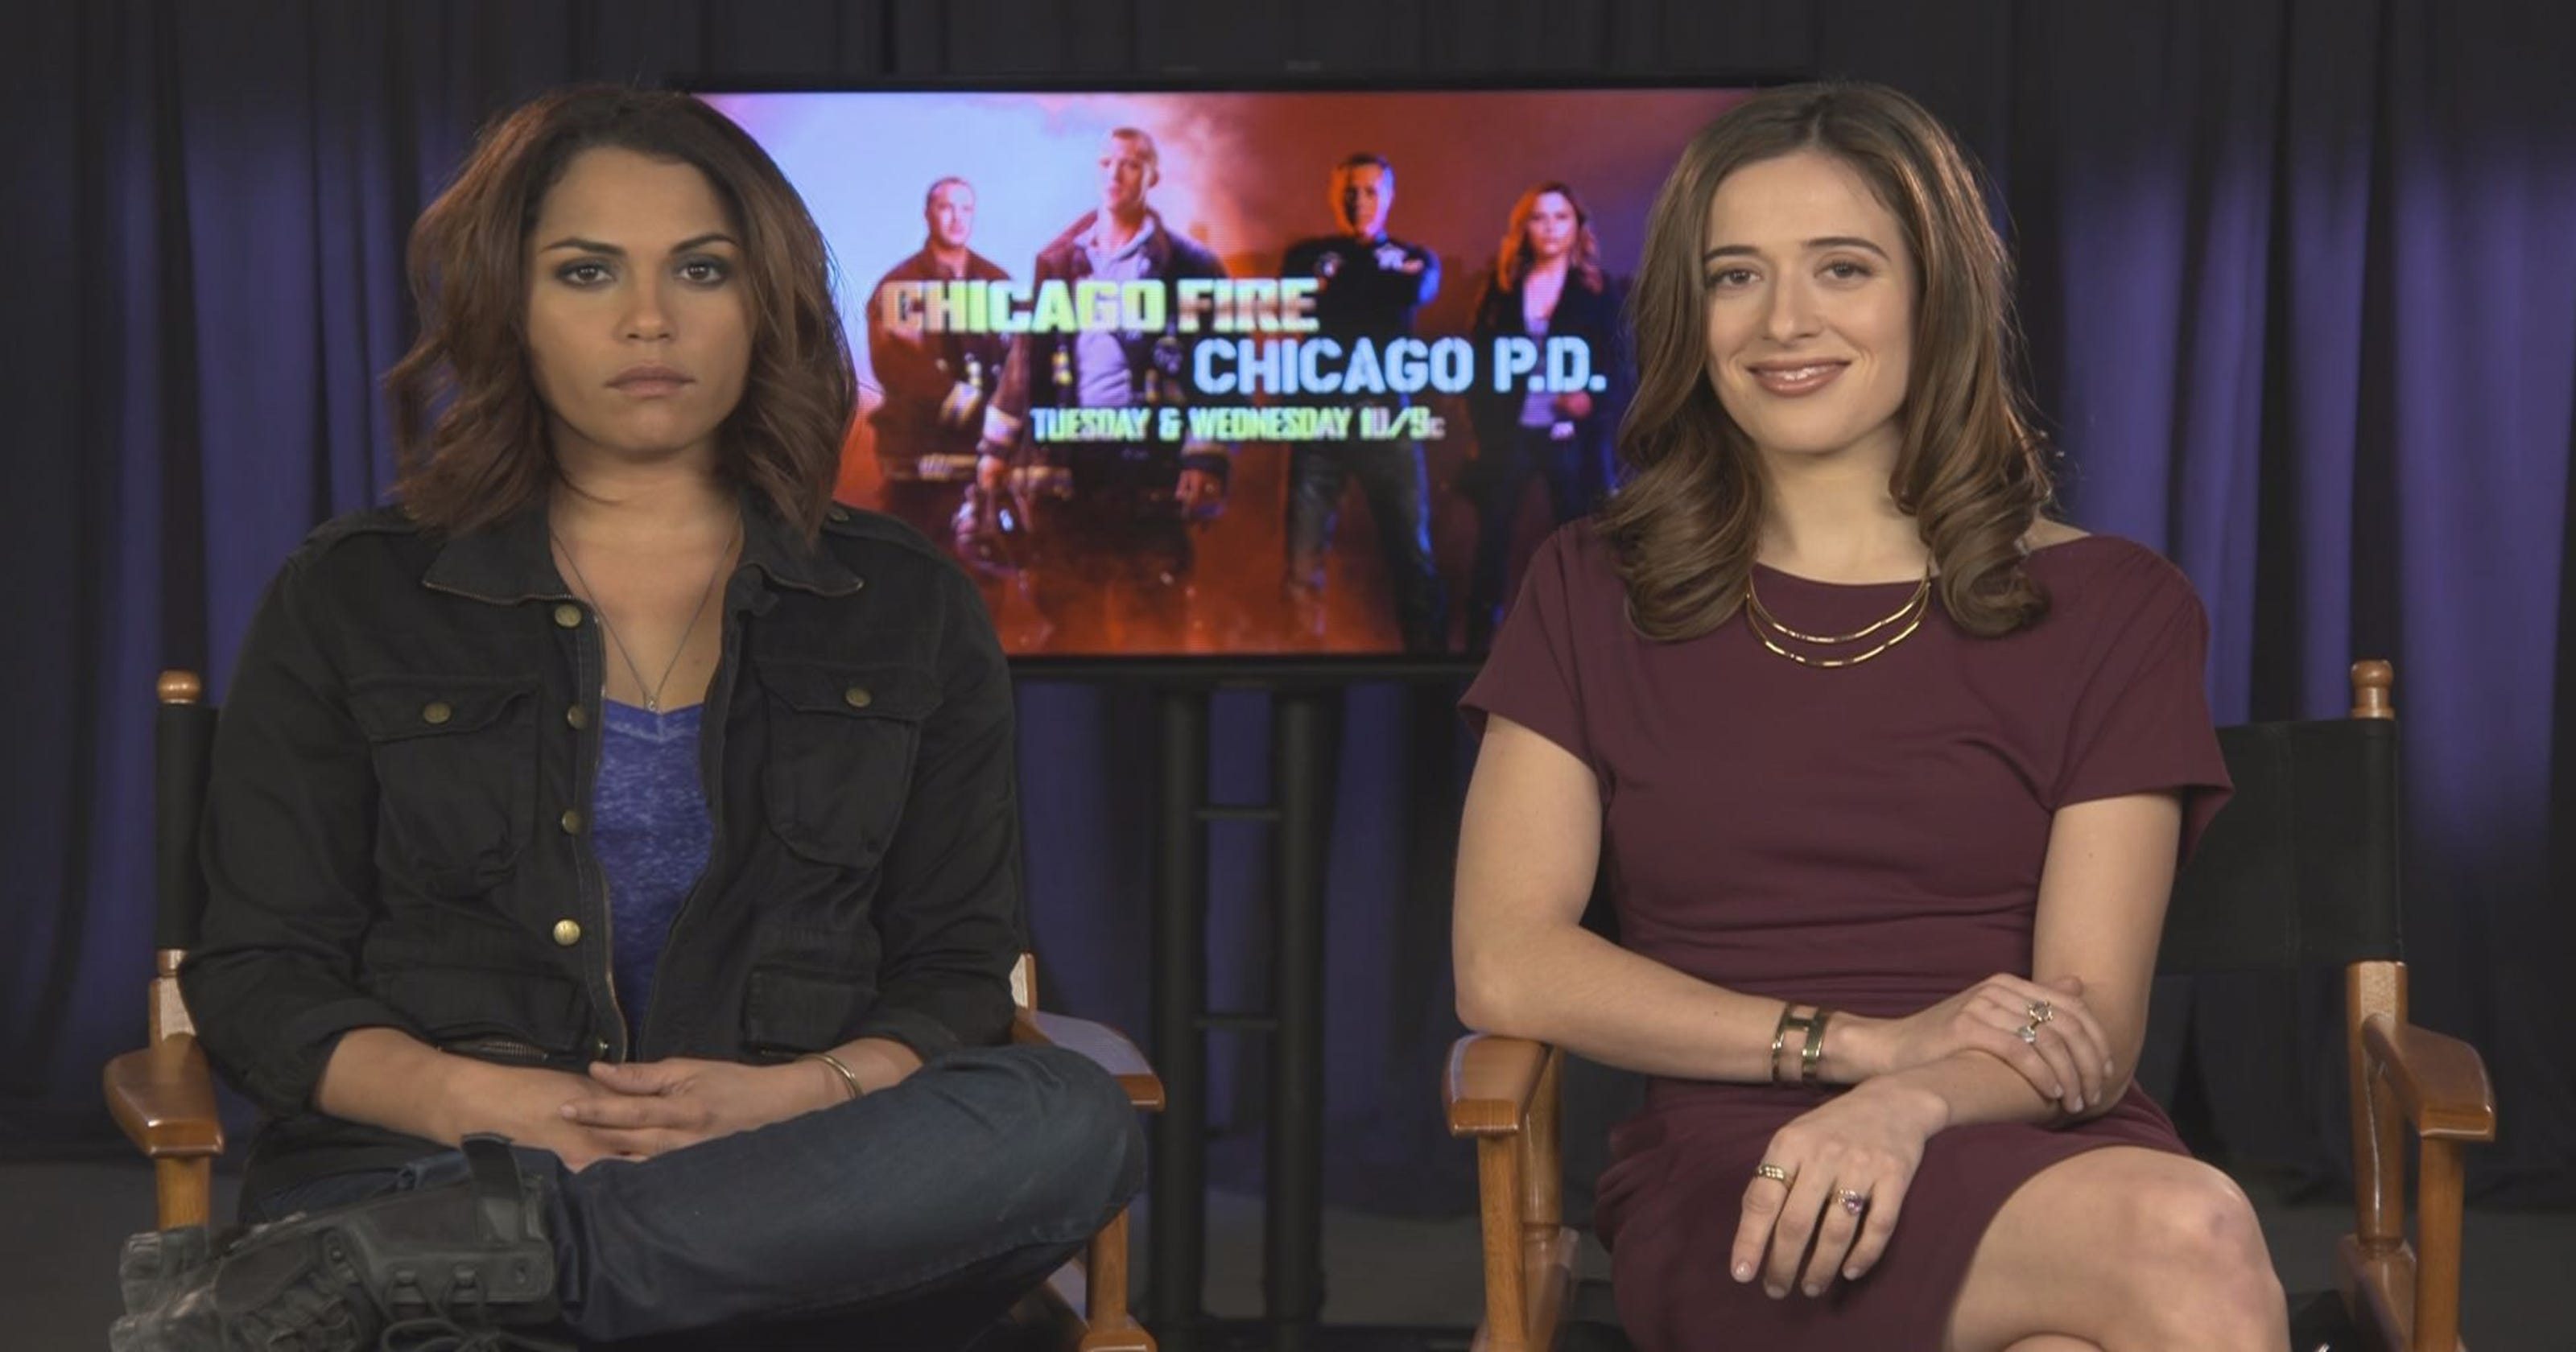 chicago fire and pd crossover episode 2015